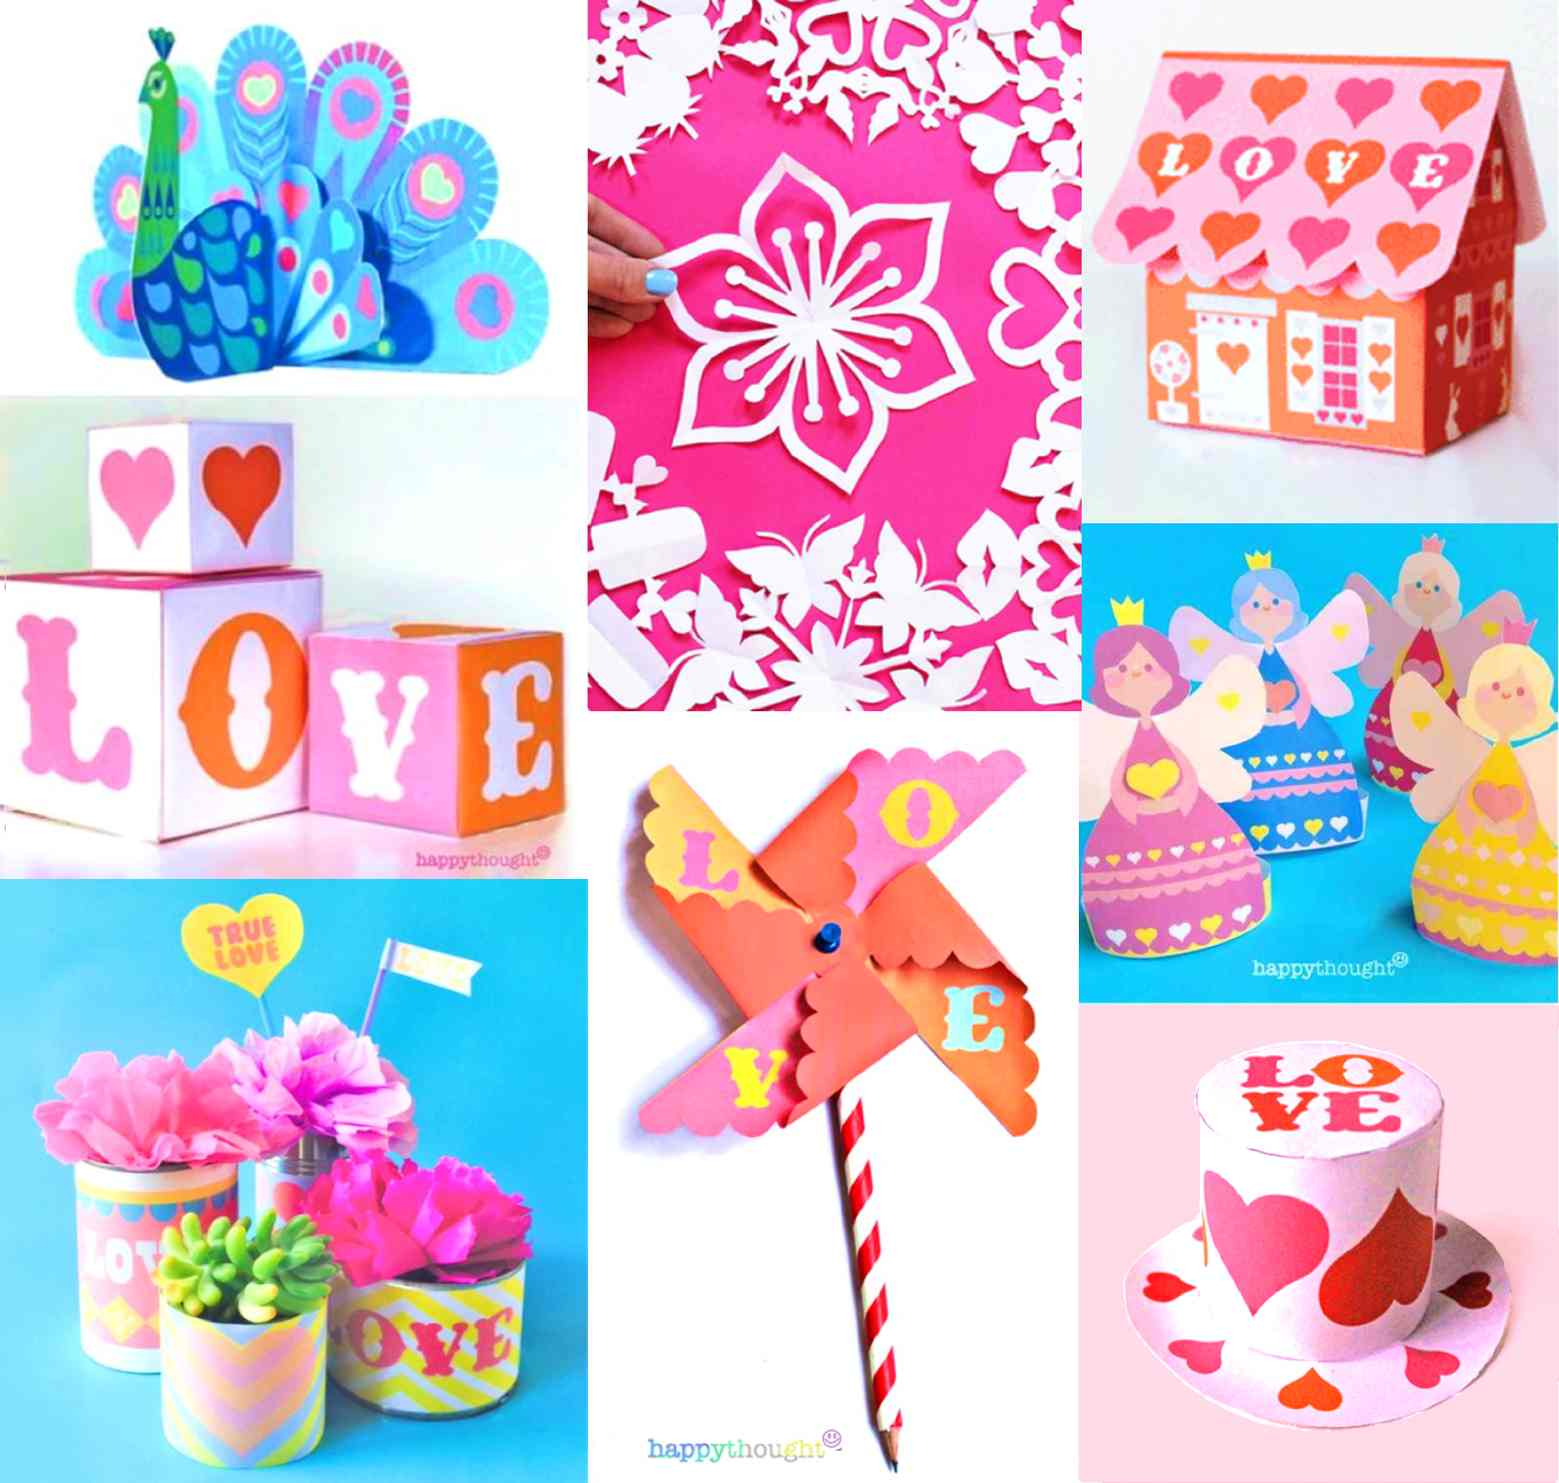 DIY paper crafts for Valentine's Day